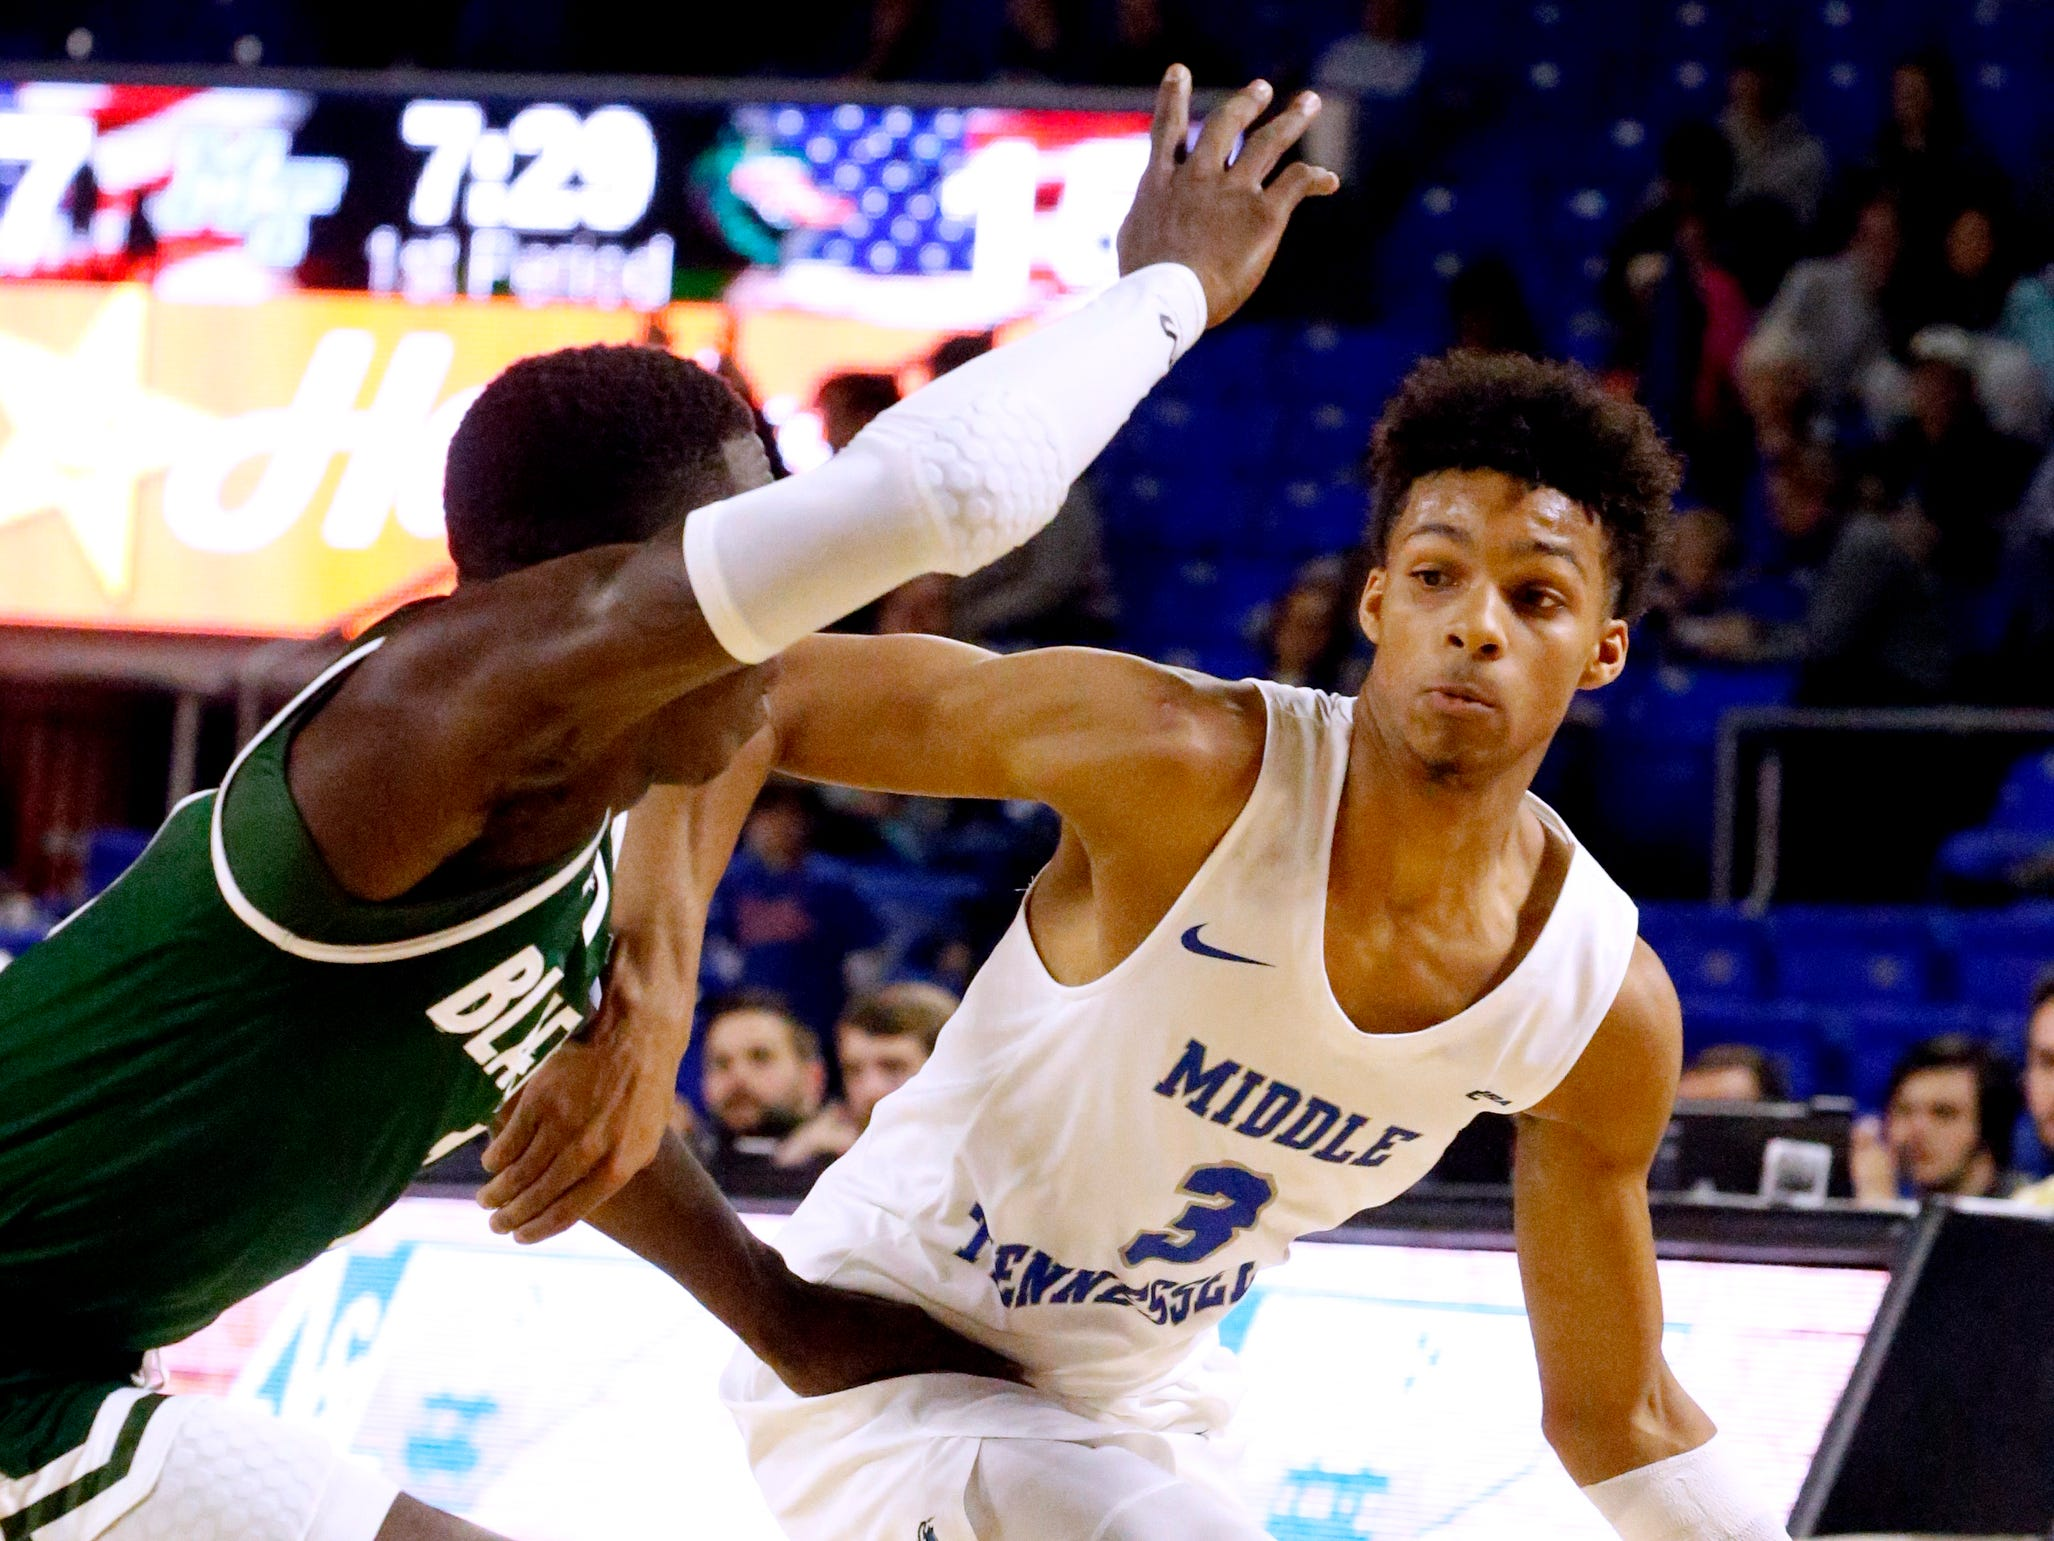 MTSU guard Donovan Sims (3) drives to the basket as UAB's guard Zack Bryant (1) guards him on Wednesday Jan. 30, 2019.